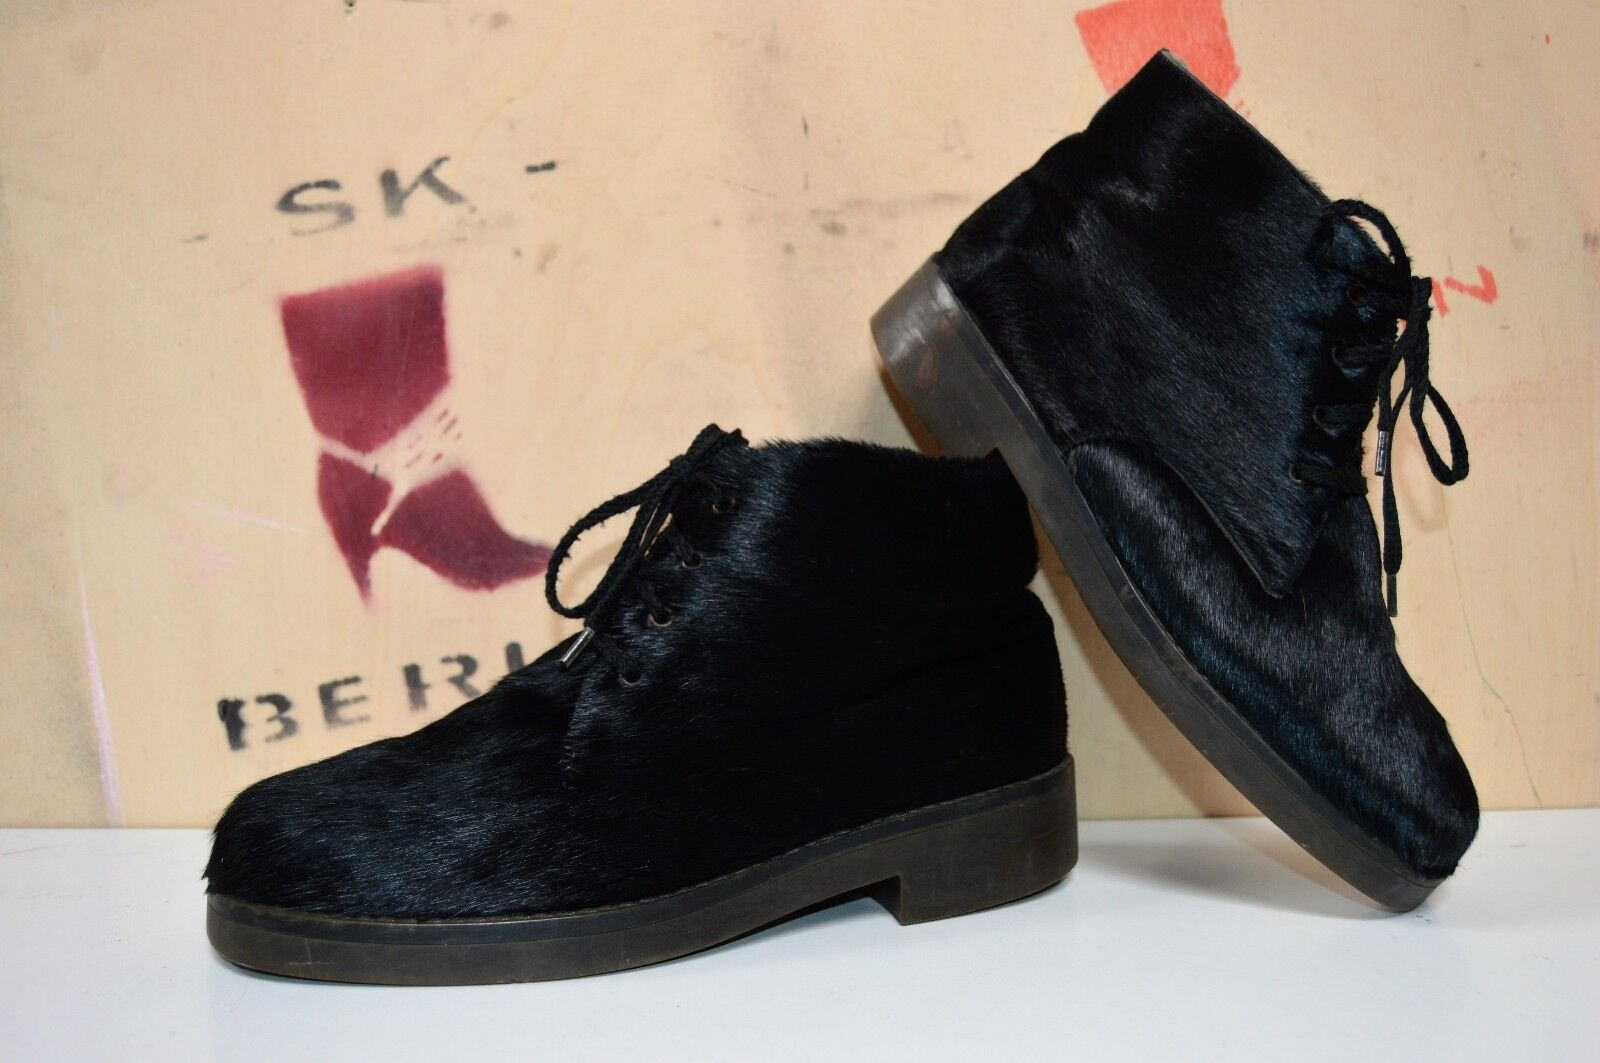 Fur Lace Up Ankle Boot Boots M + S Gallus Fashion True Vintage Western Germany Fur